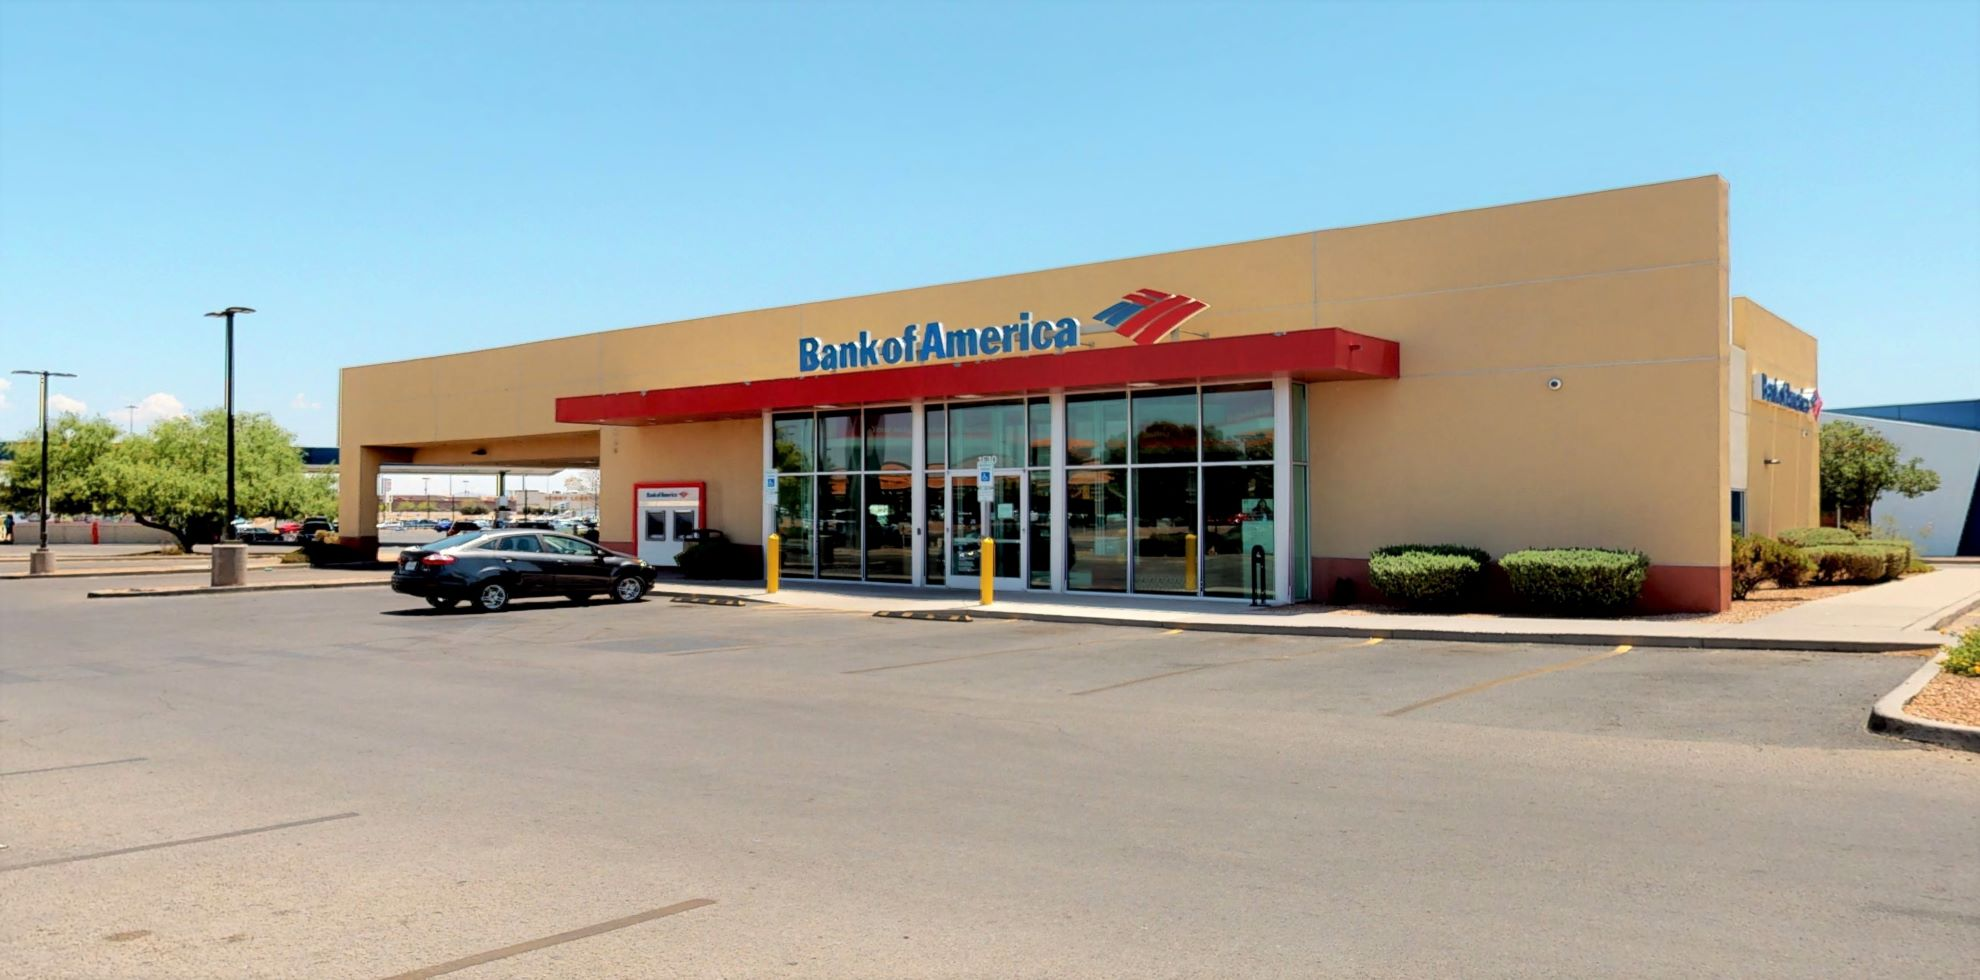 Bank of America financial center with drive-thru ATM and teller   1810 N Zaragoza Rd, El Paso, TX 79936